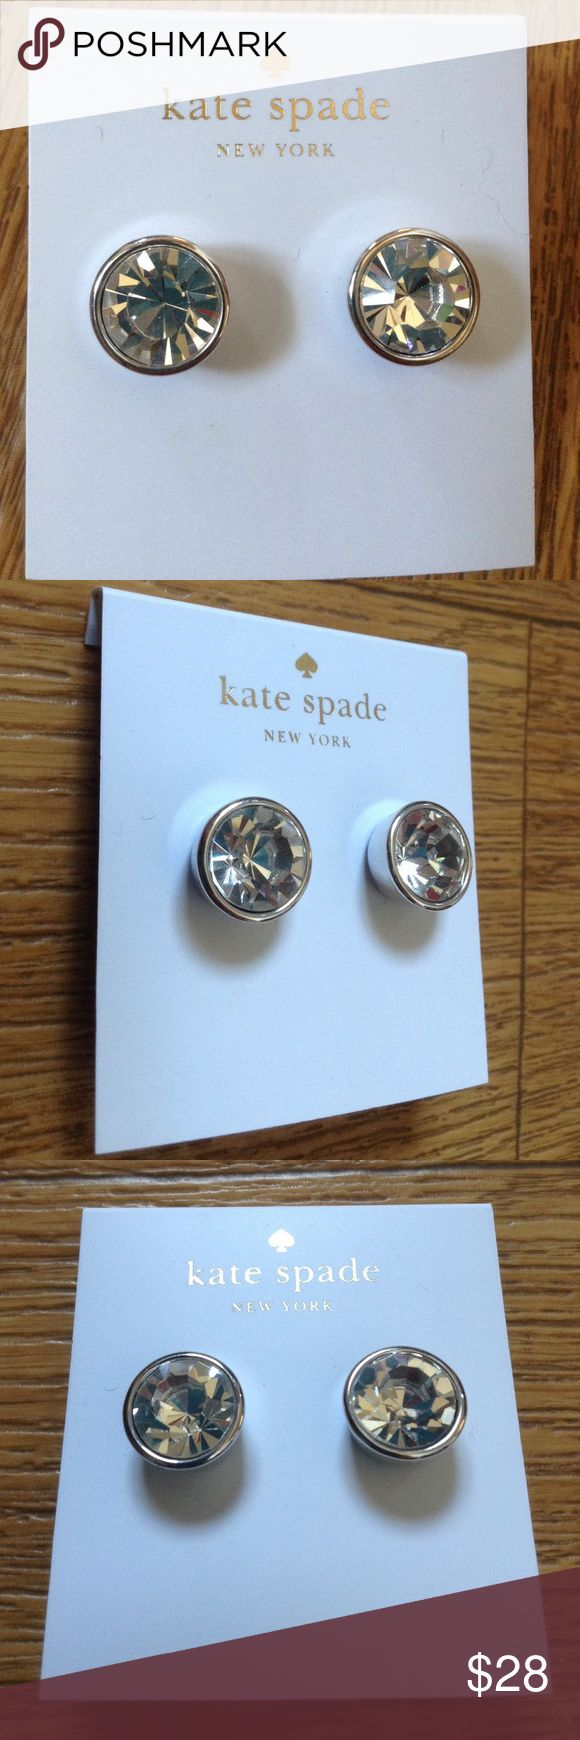 Kate Spade Gumdrop Stud Earrings Silver Diamond NY Authentic!!! Brand new!!! Wow!!! The original price is $38.   Bundle up with my other items to get an extra discount and save on combined shipping!!    🏉👍🏻👠 kate spade Jewelry Earrings